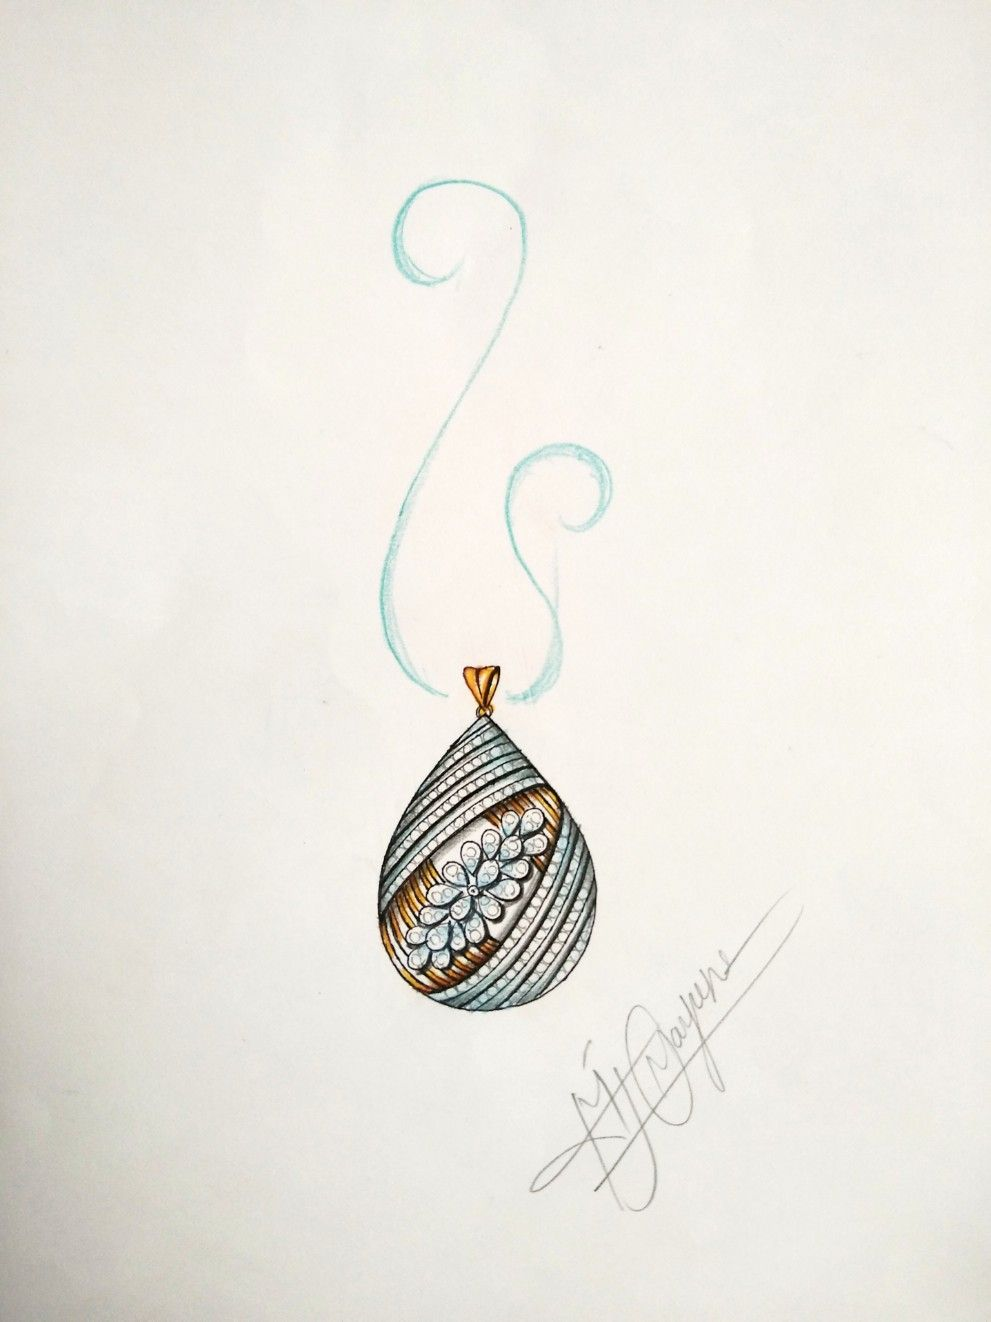 Pin By Artgayana On Jewellery Sketching In 2020 Jewelry